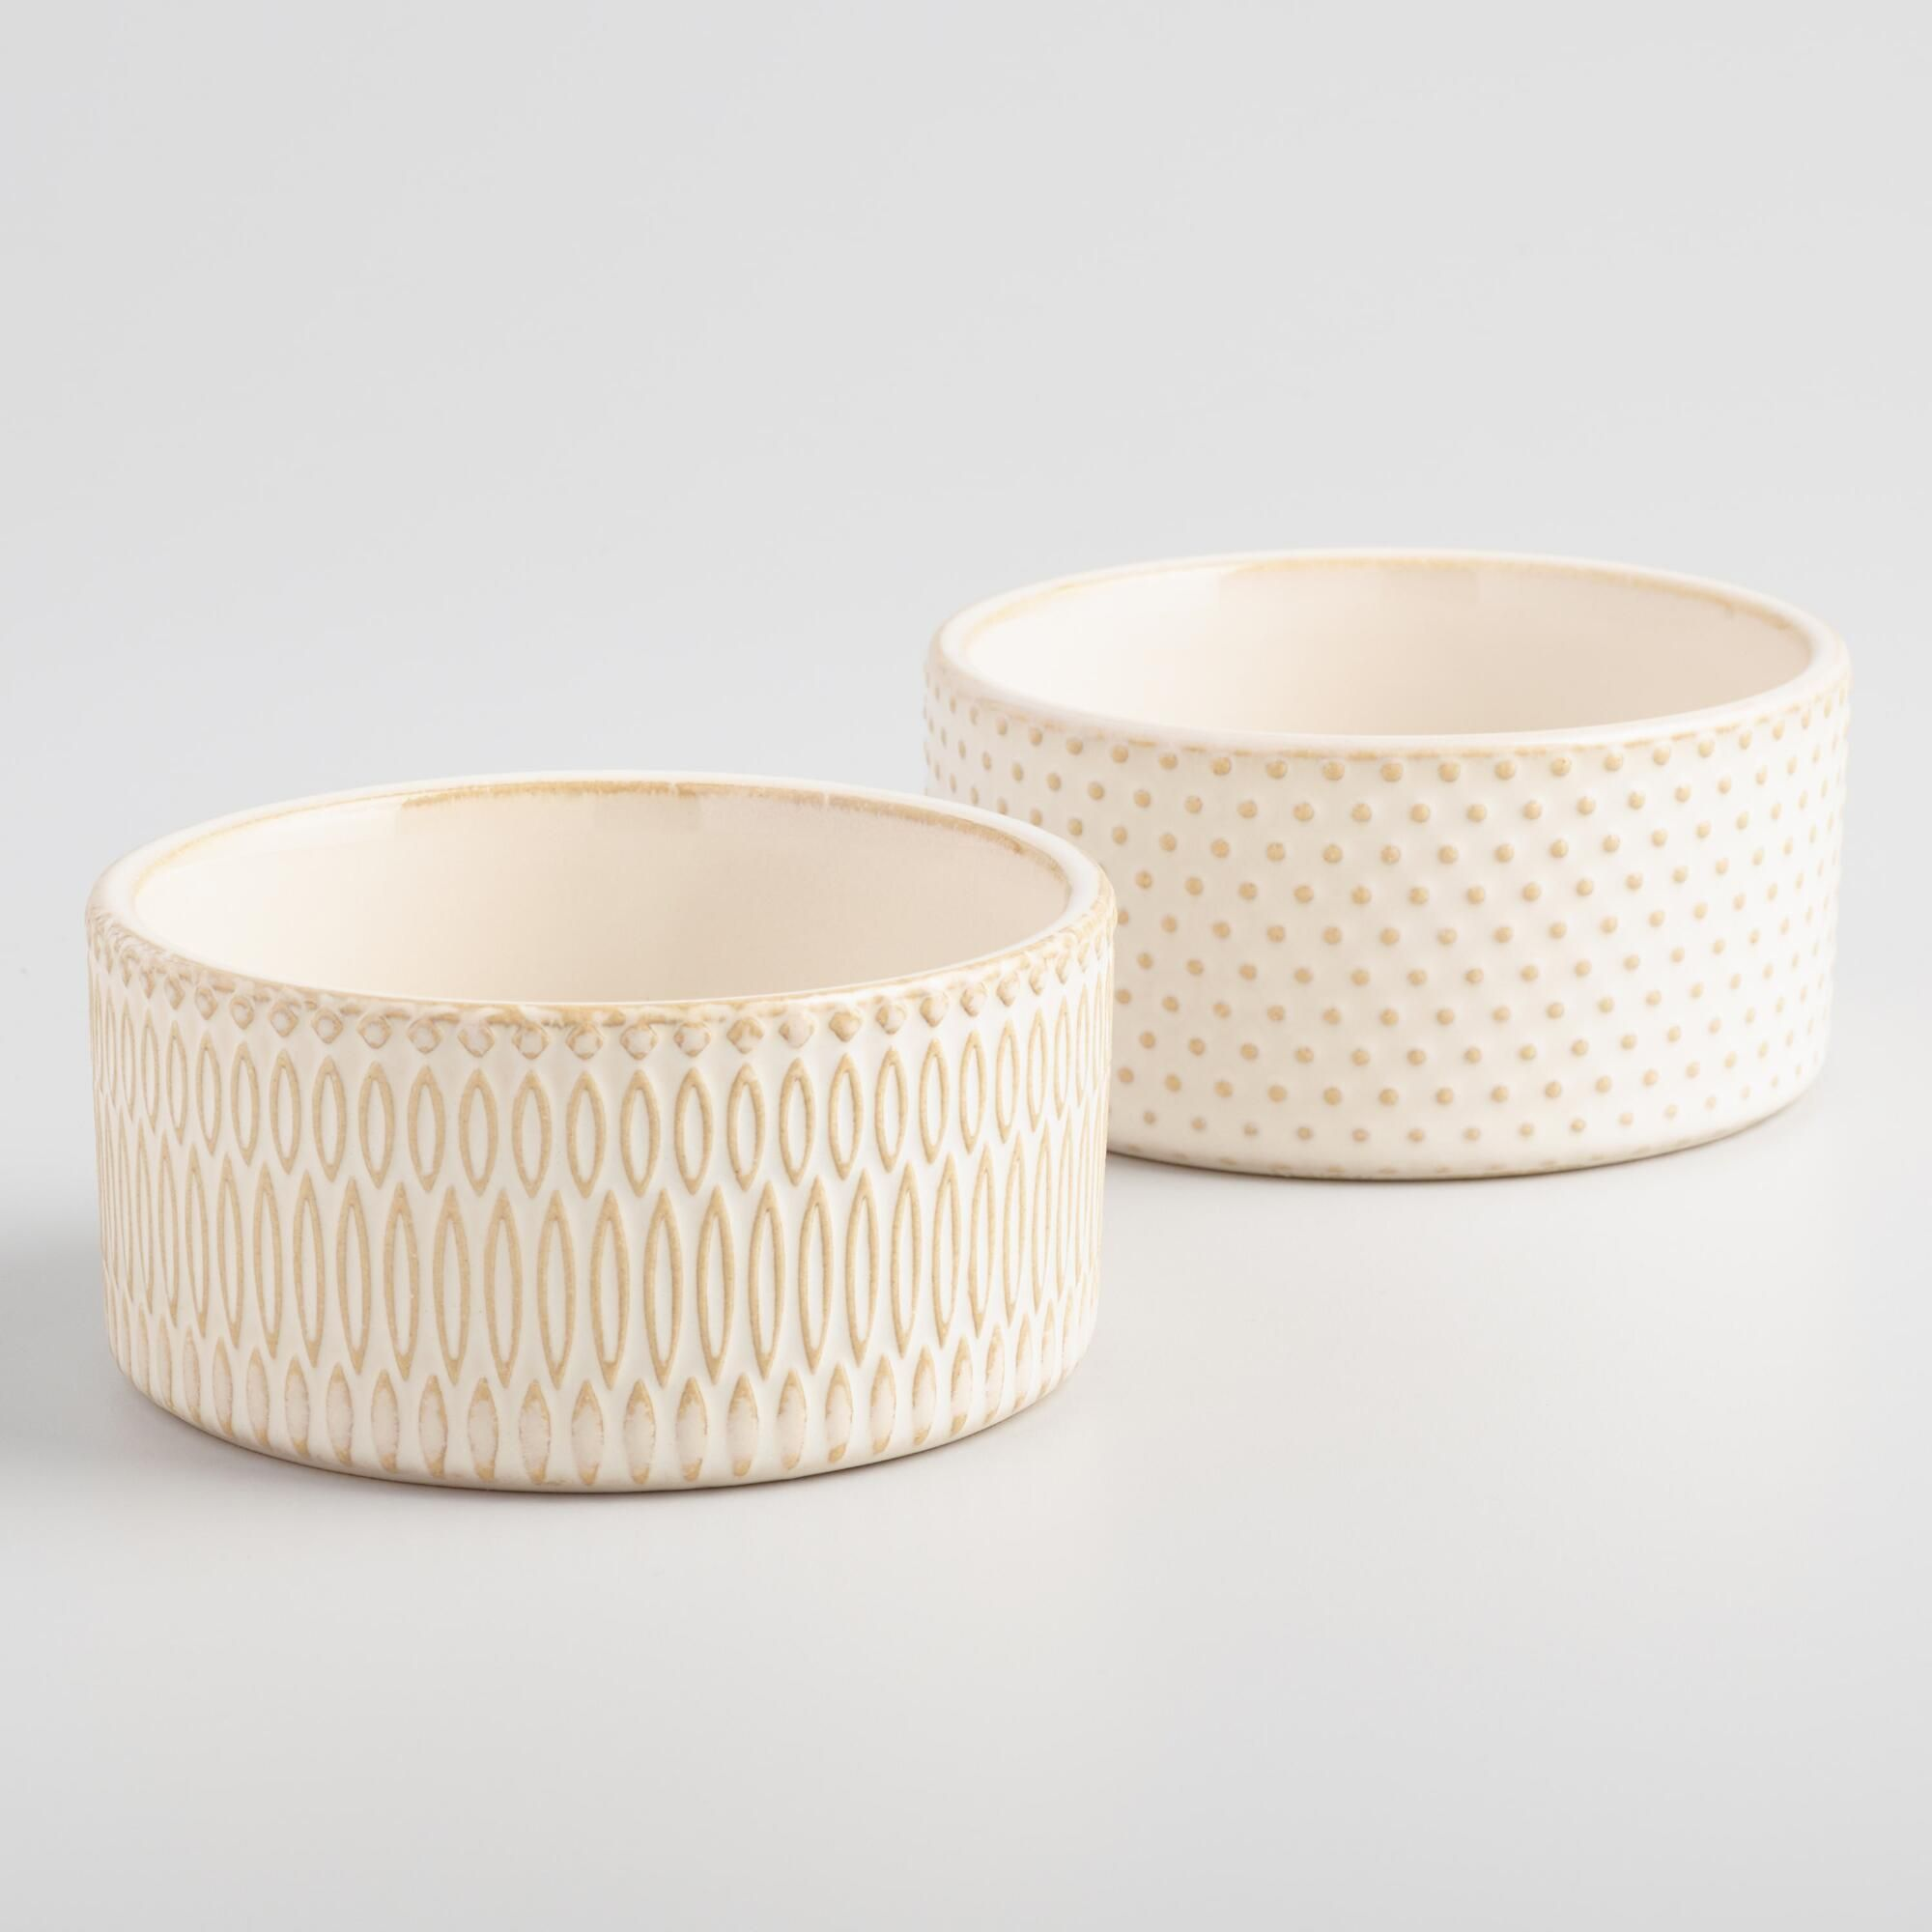 Crafted Of Stoneware With Two Chic Textured Designs Our Exclusive Neutral Hued Ramekins Are The Perfect Size For Souffles Ramekins Stoneware Stoneware Baker